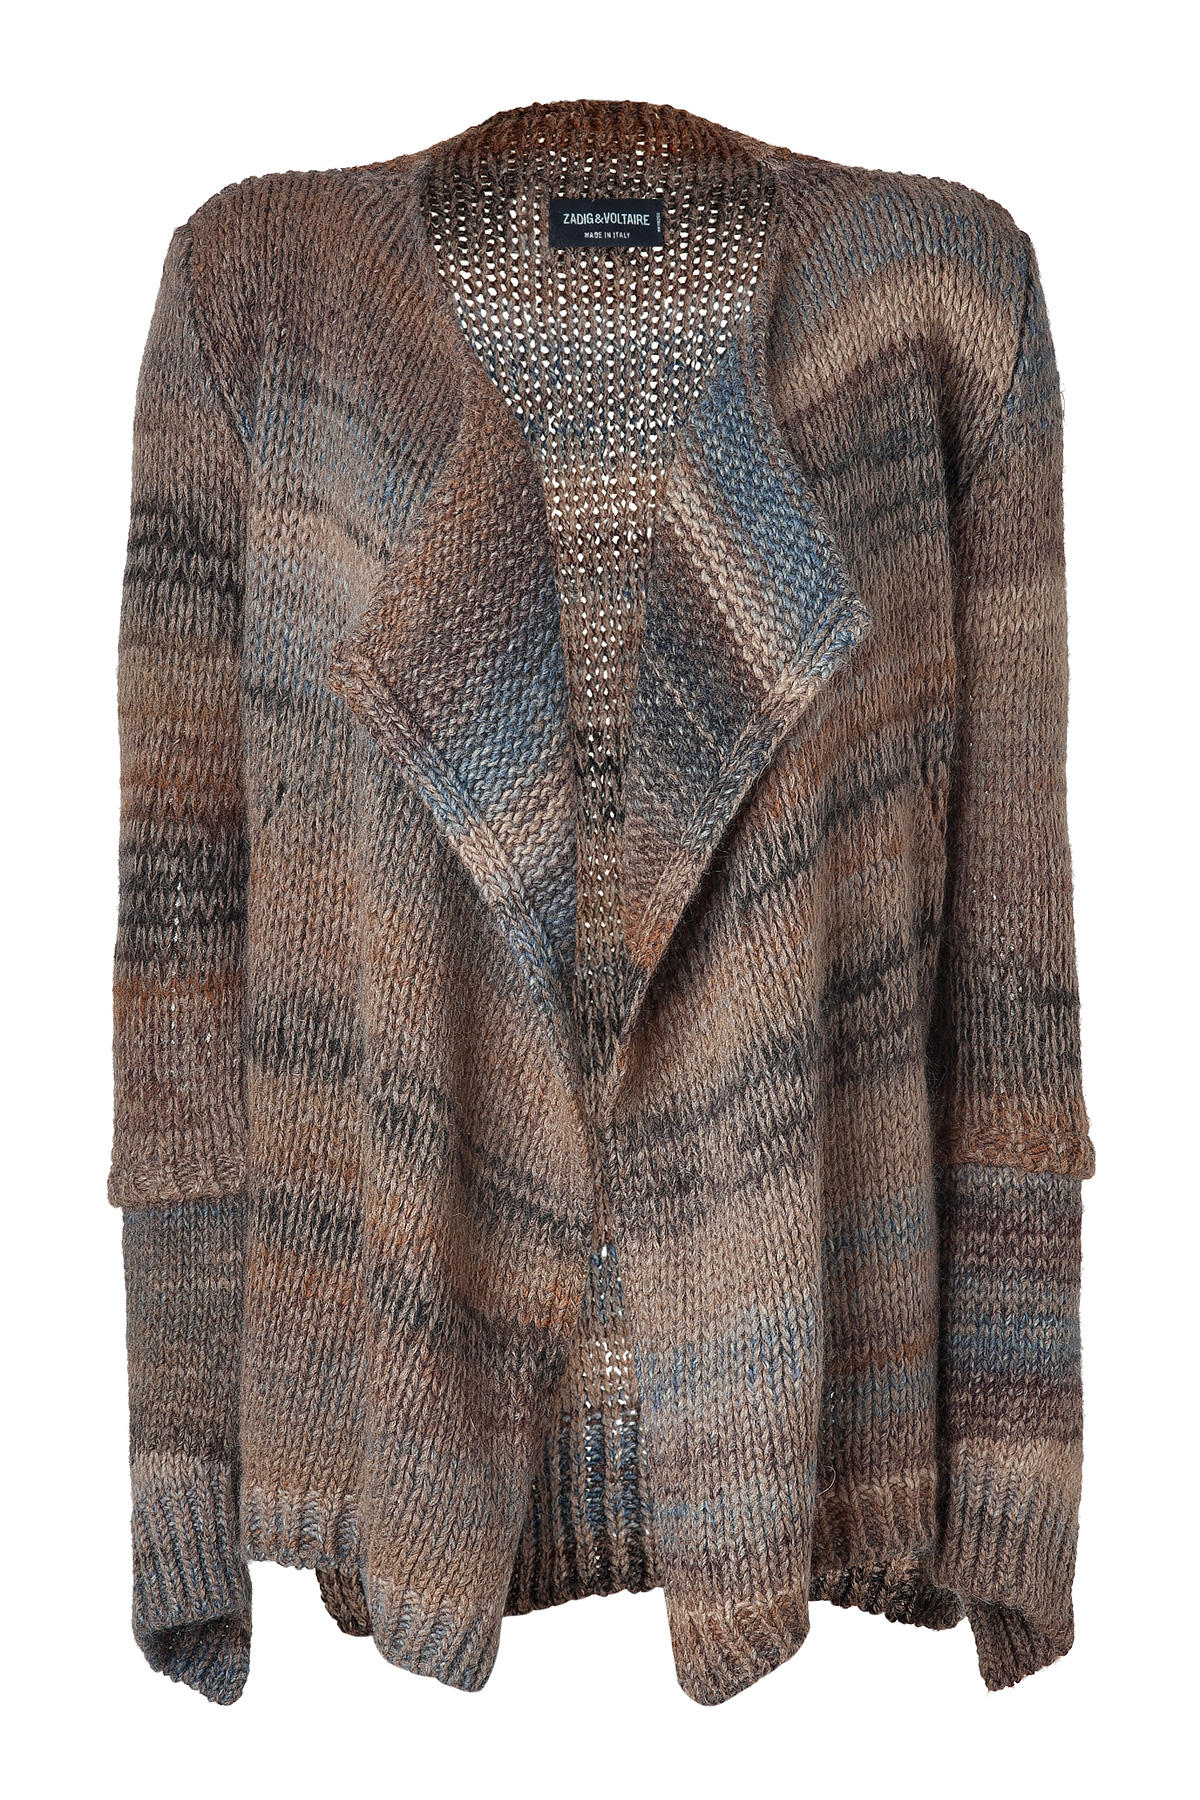 Zadig & voltaire Faded Brown Chunky Knit Open Cardigan in Brown | Lyst